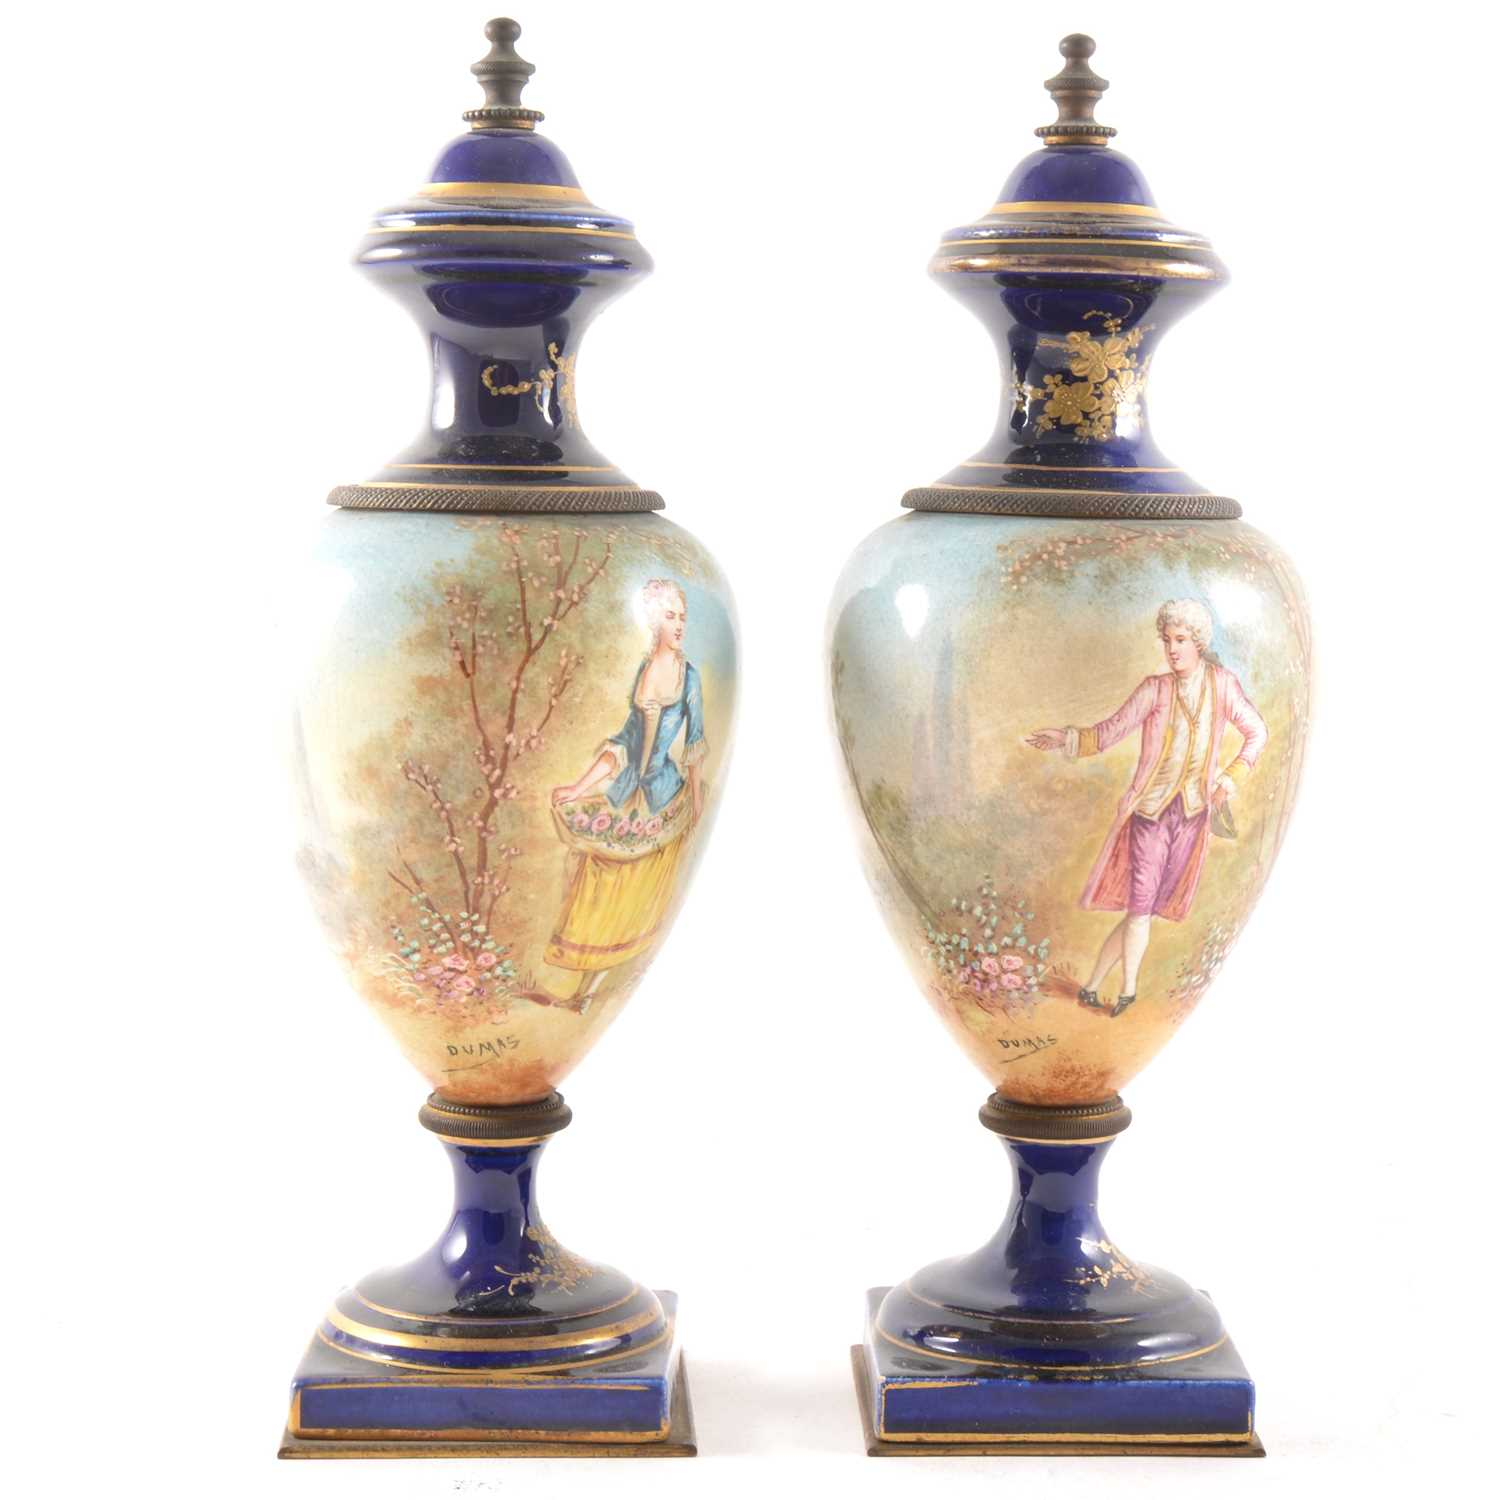 Lot 4-A pair of Sevres style pedestal vases, signed Dumas